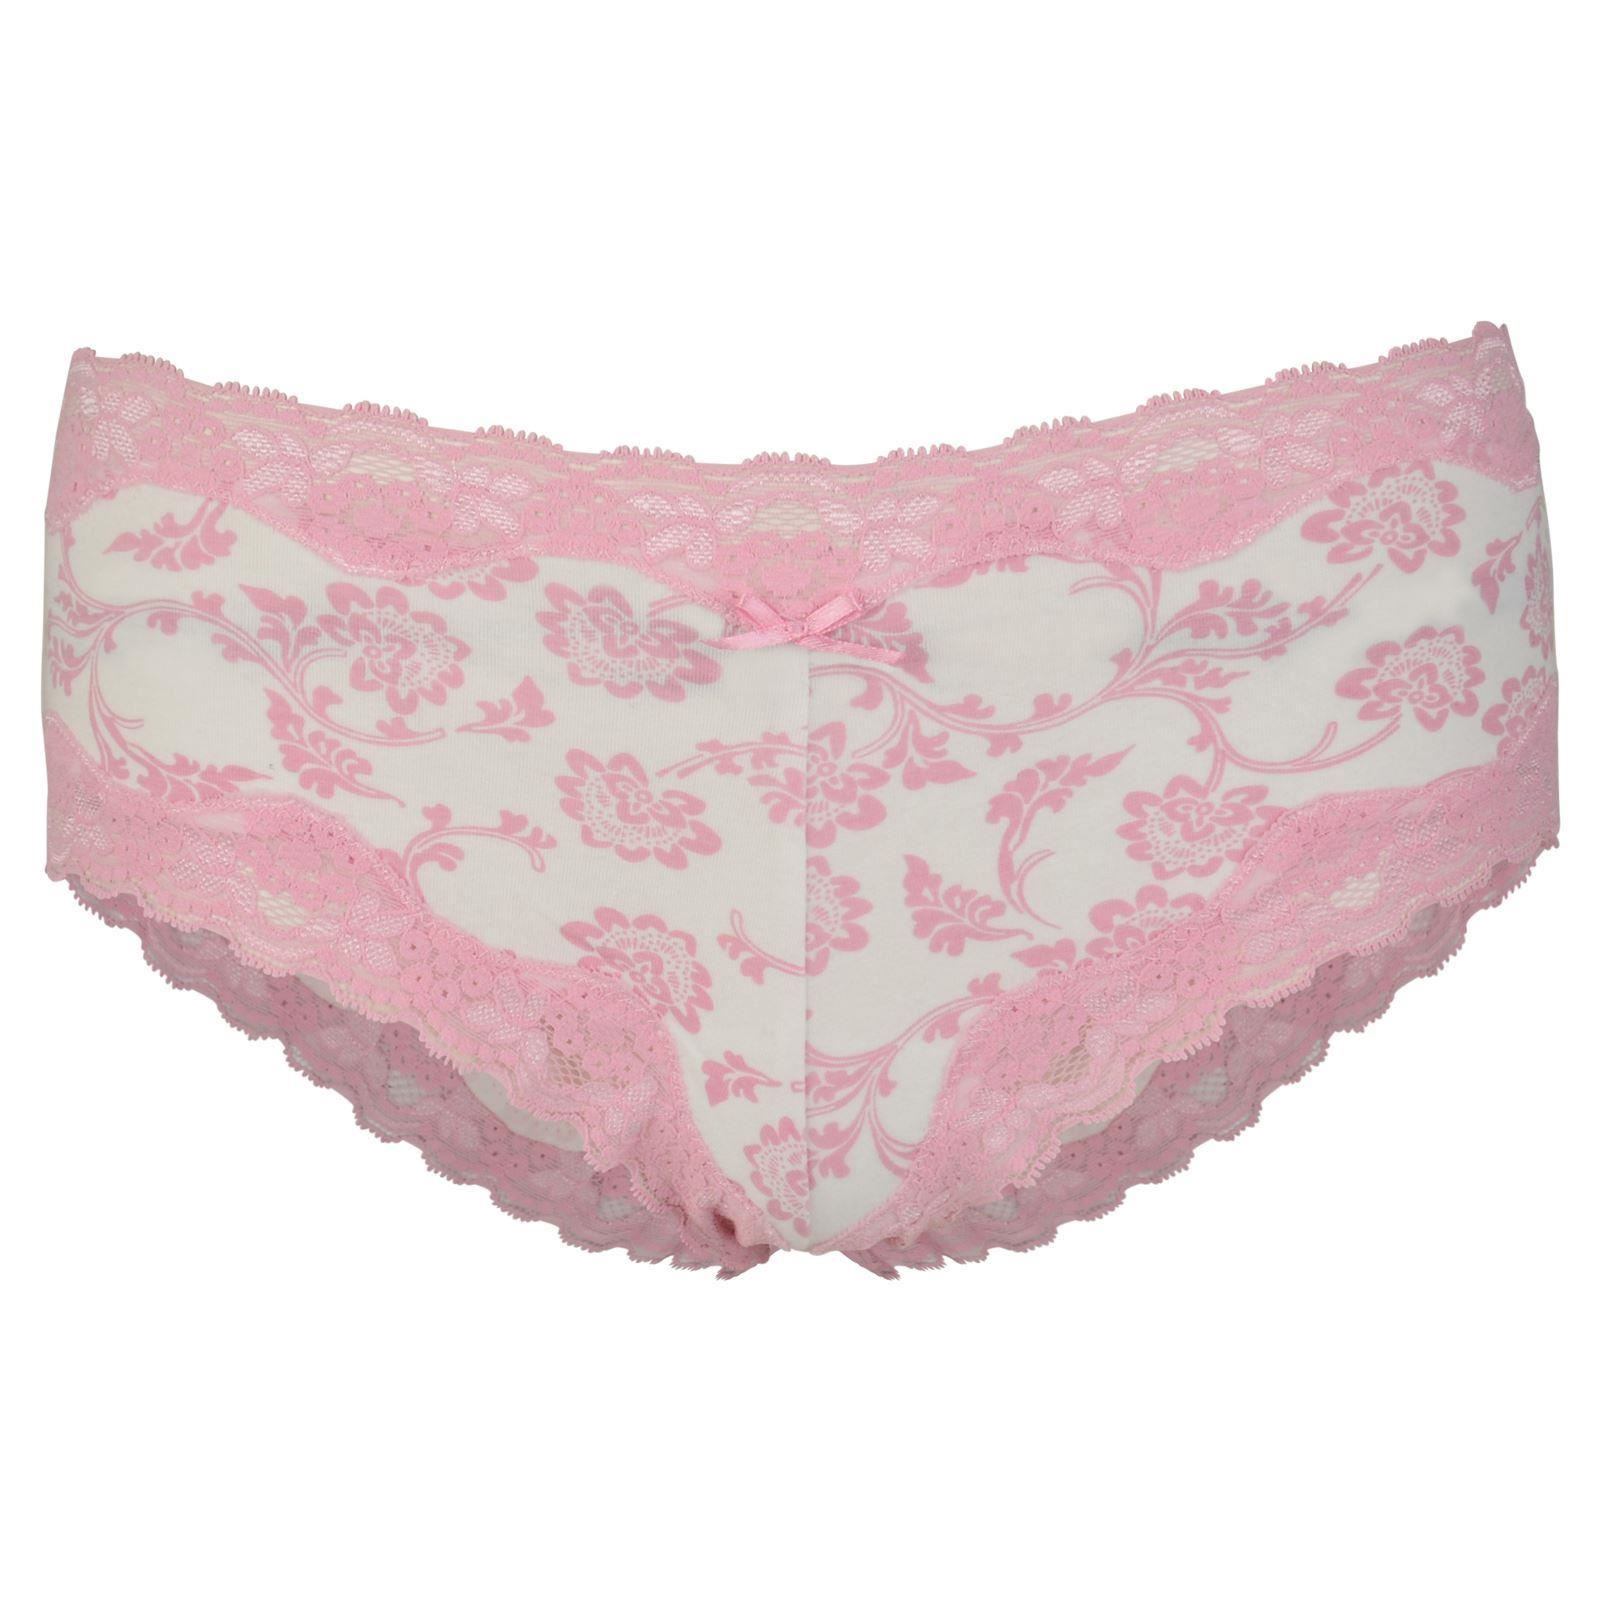 Ladies Lace Floral French Knickers Boy Shorts Crotch Gusset  M Size 12-14